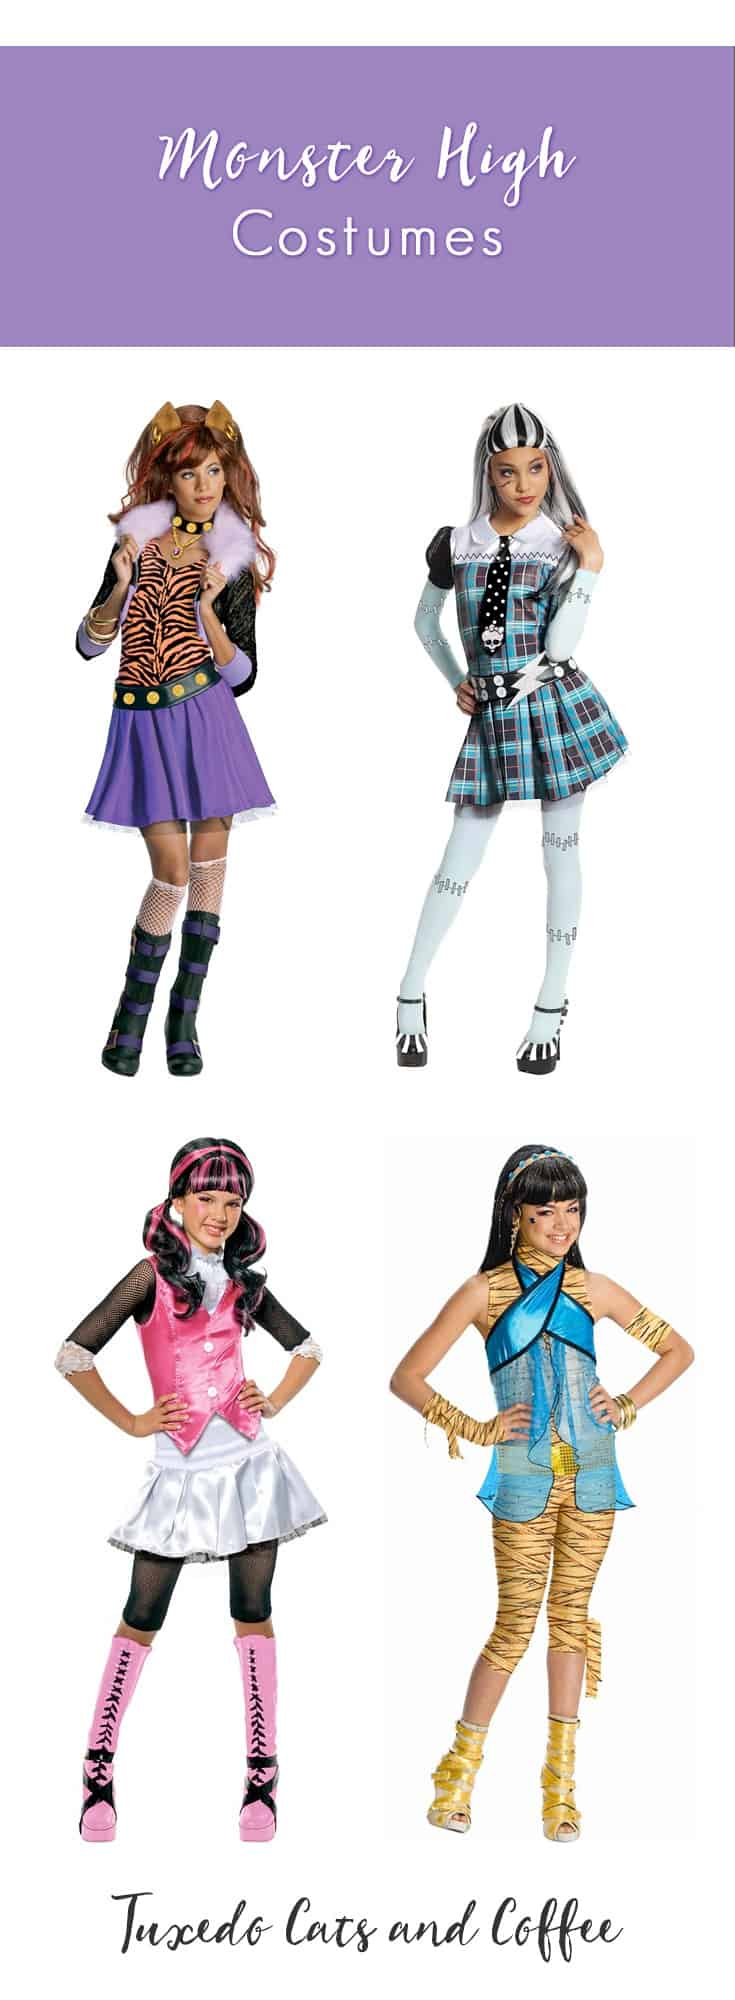 Monster High Costumes  sc 1 st  Tuxedo Cats and Coffee & Monster High Costumes - Tuxedo Cats and Coffee